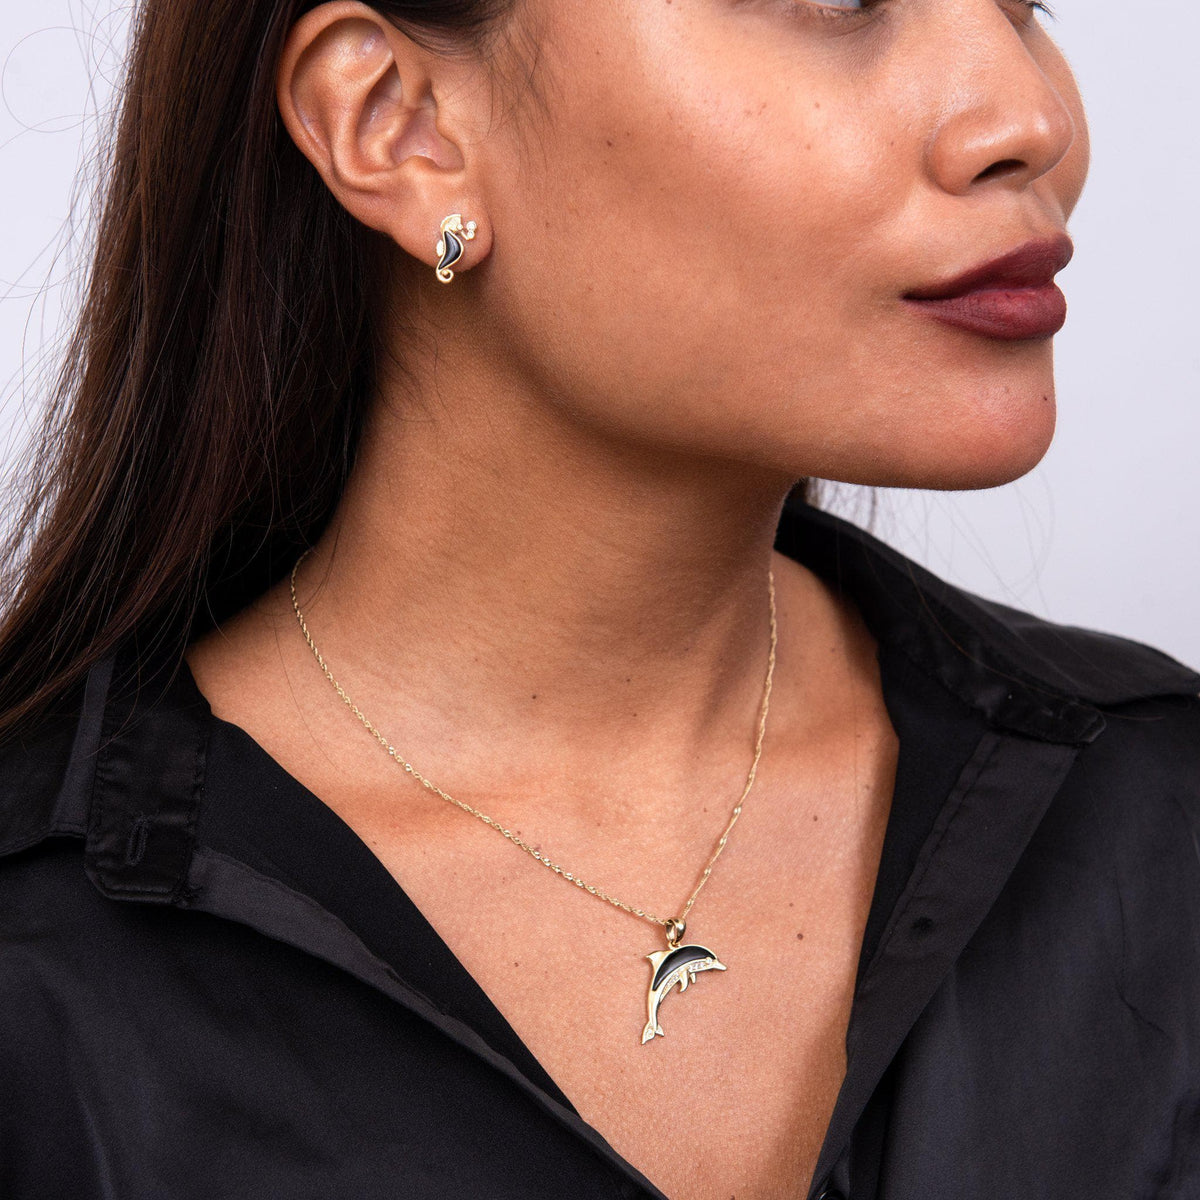 Sealife Dolphin Black Coral Pendant in Gold with Diamonds - 29mm on Model with Seahorse Earrings